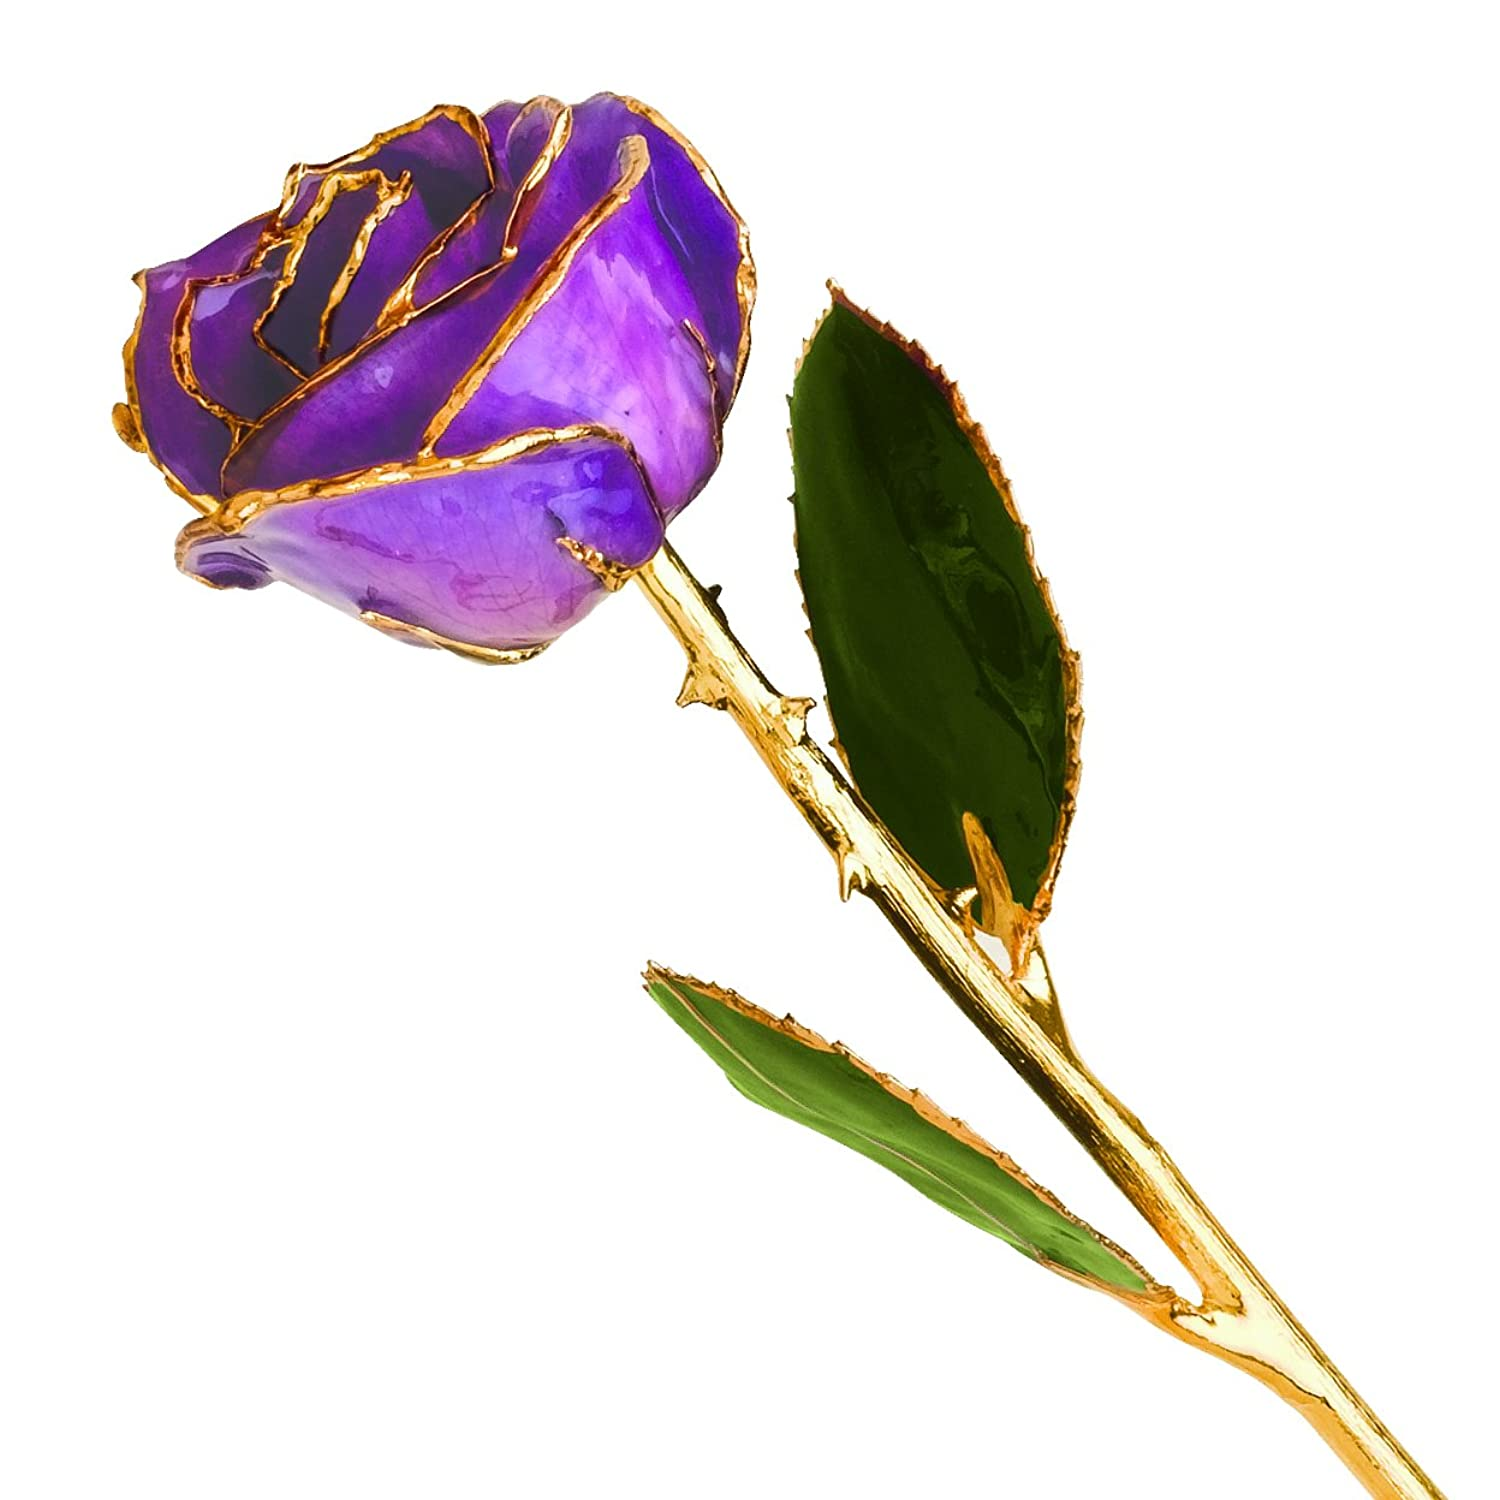 Amazon Long Stem Dipped 24K Gold Trim Purple Genuine Rose In